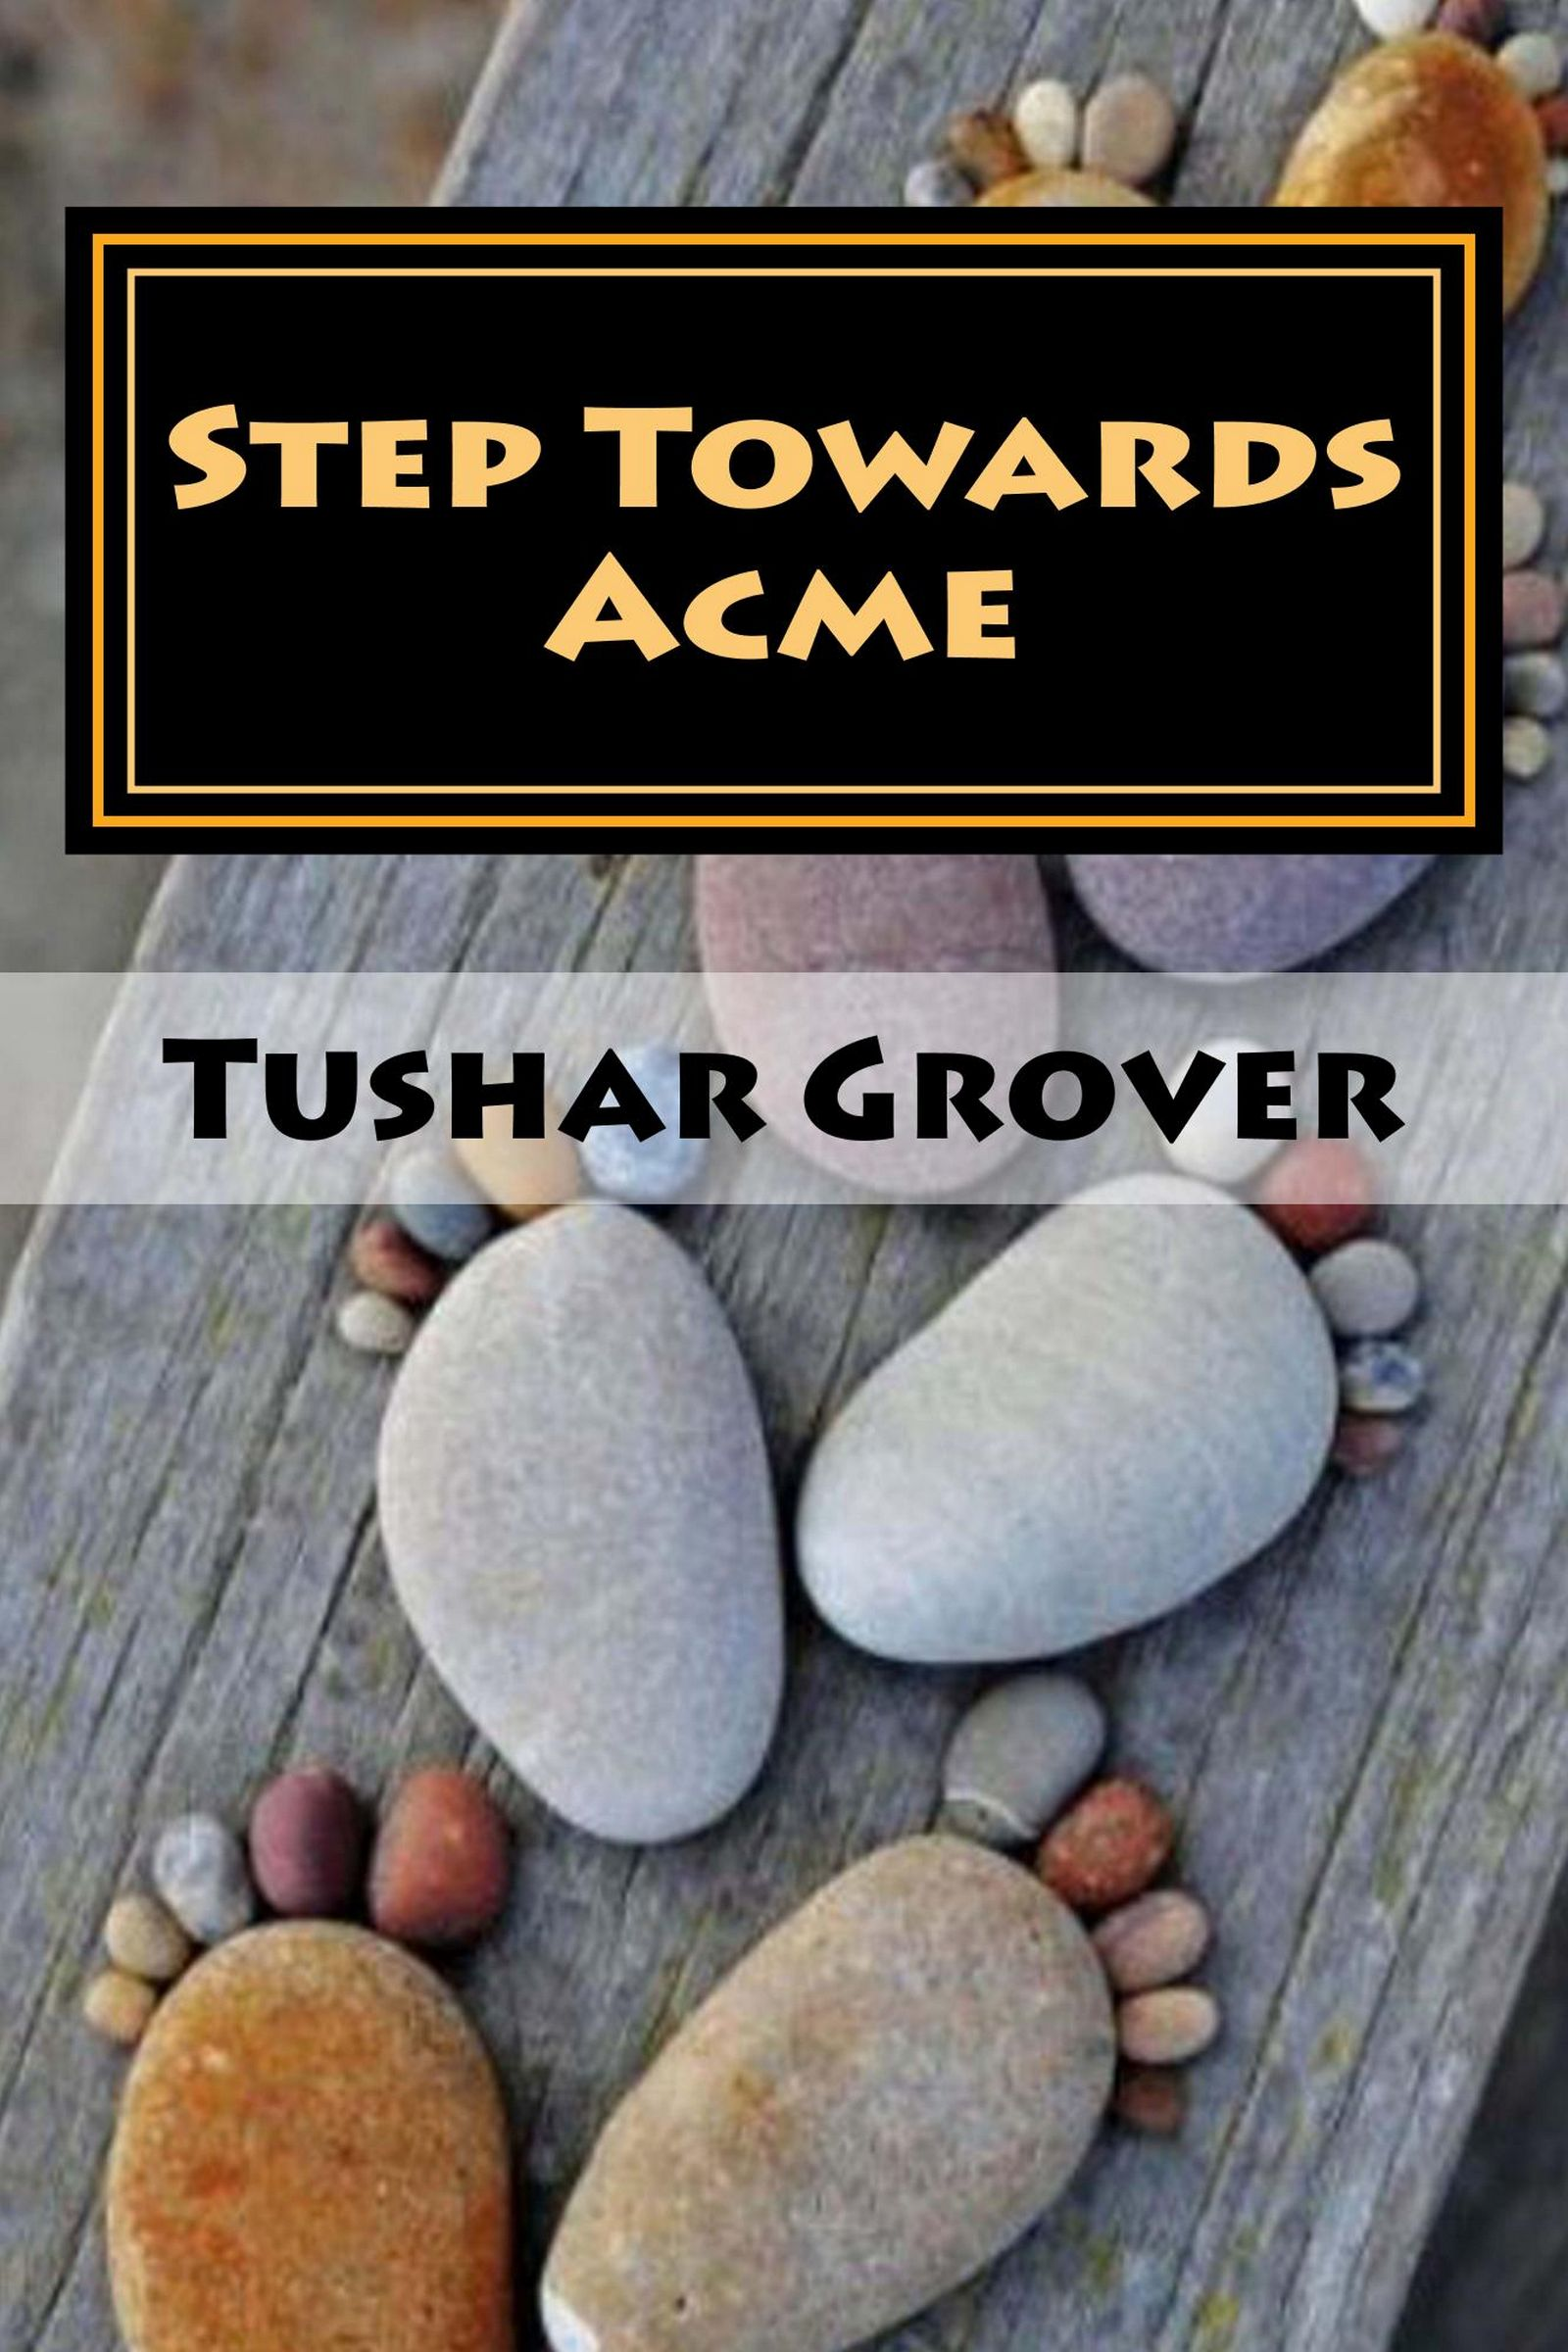 Step Towards acme :A journey towards everlasting bliss